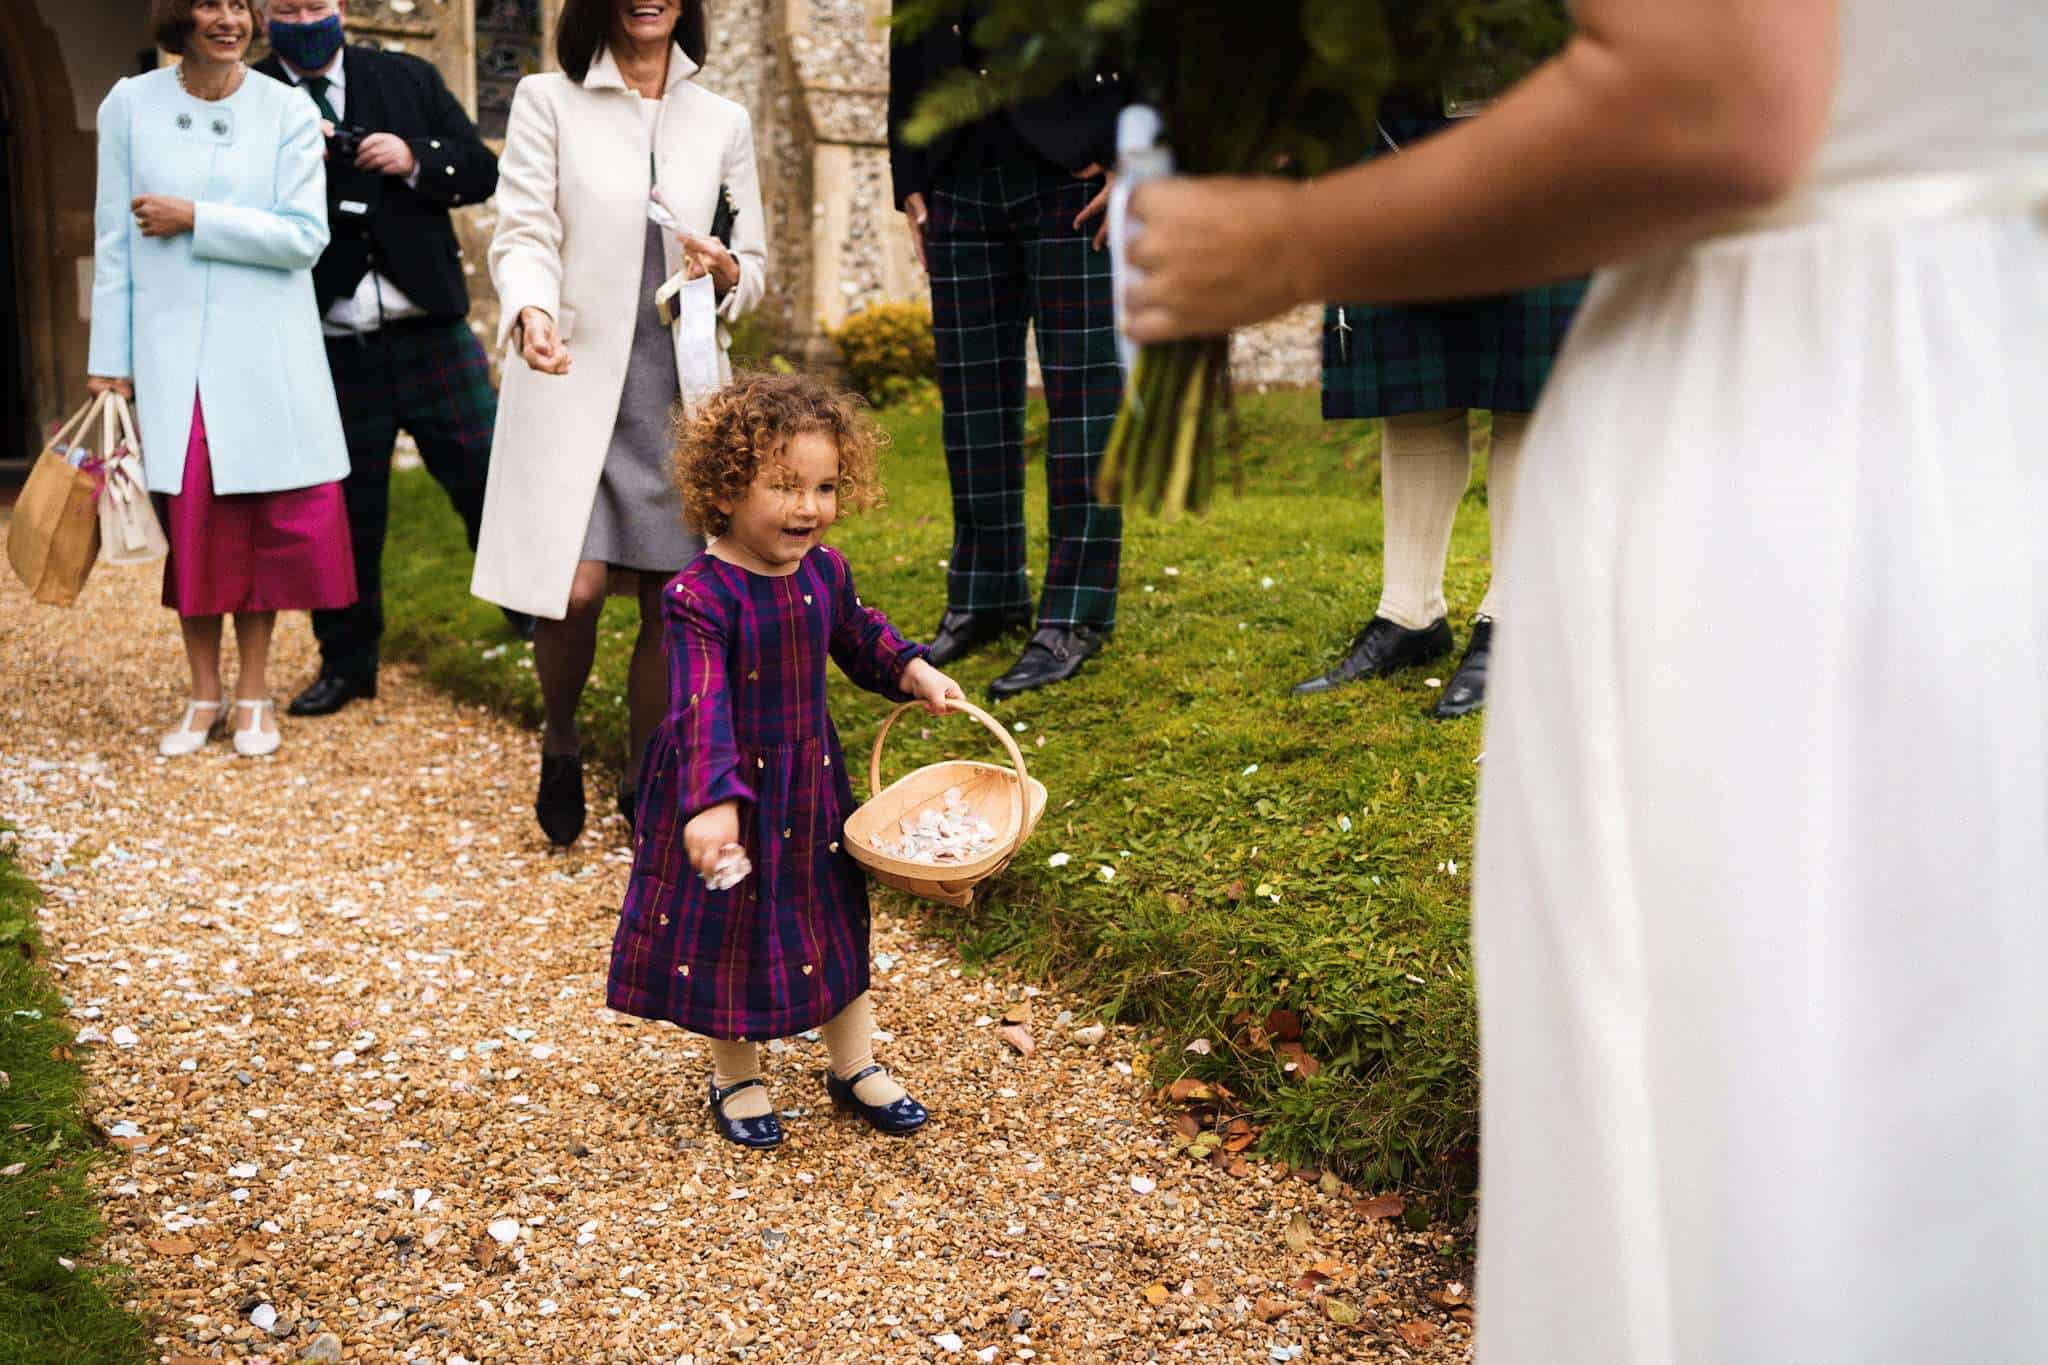 A young guest at a wedding is throwing confetti over the bride and groom